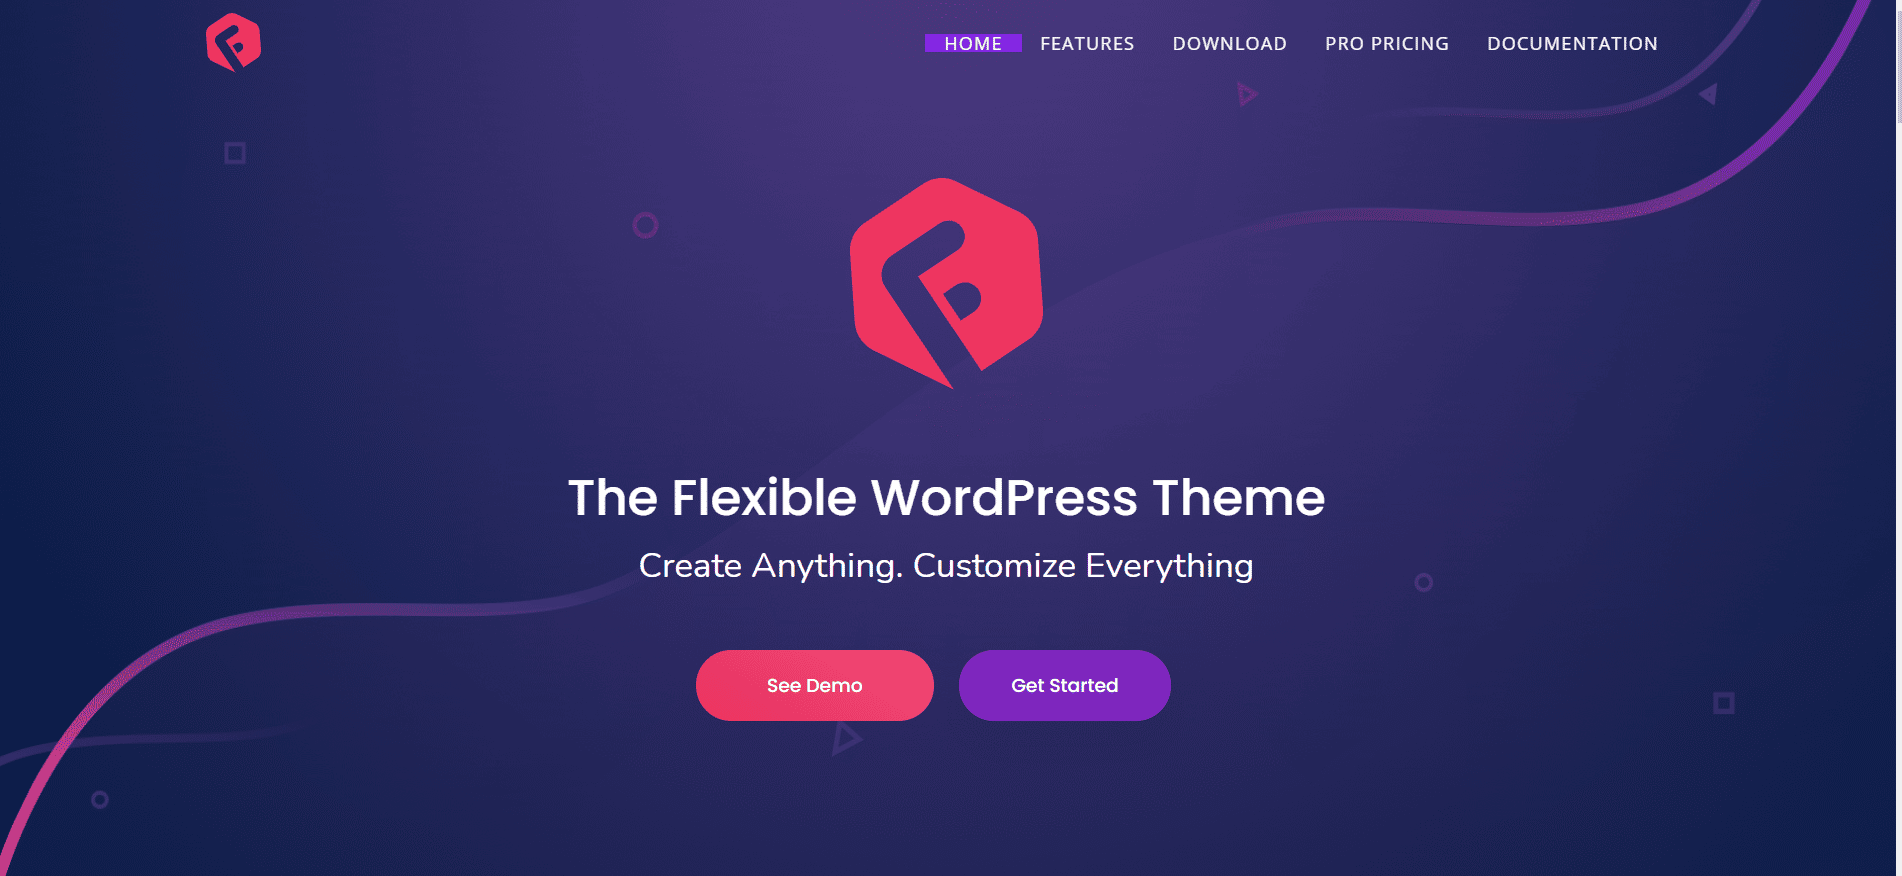 Top 10 Best WordPress Portfolio Themes To Start Your Personal Website In 2021 [FREE] 1